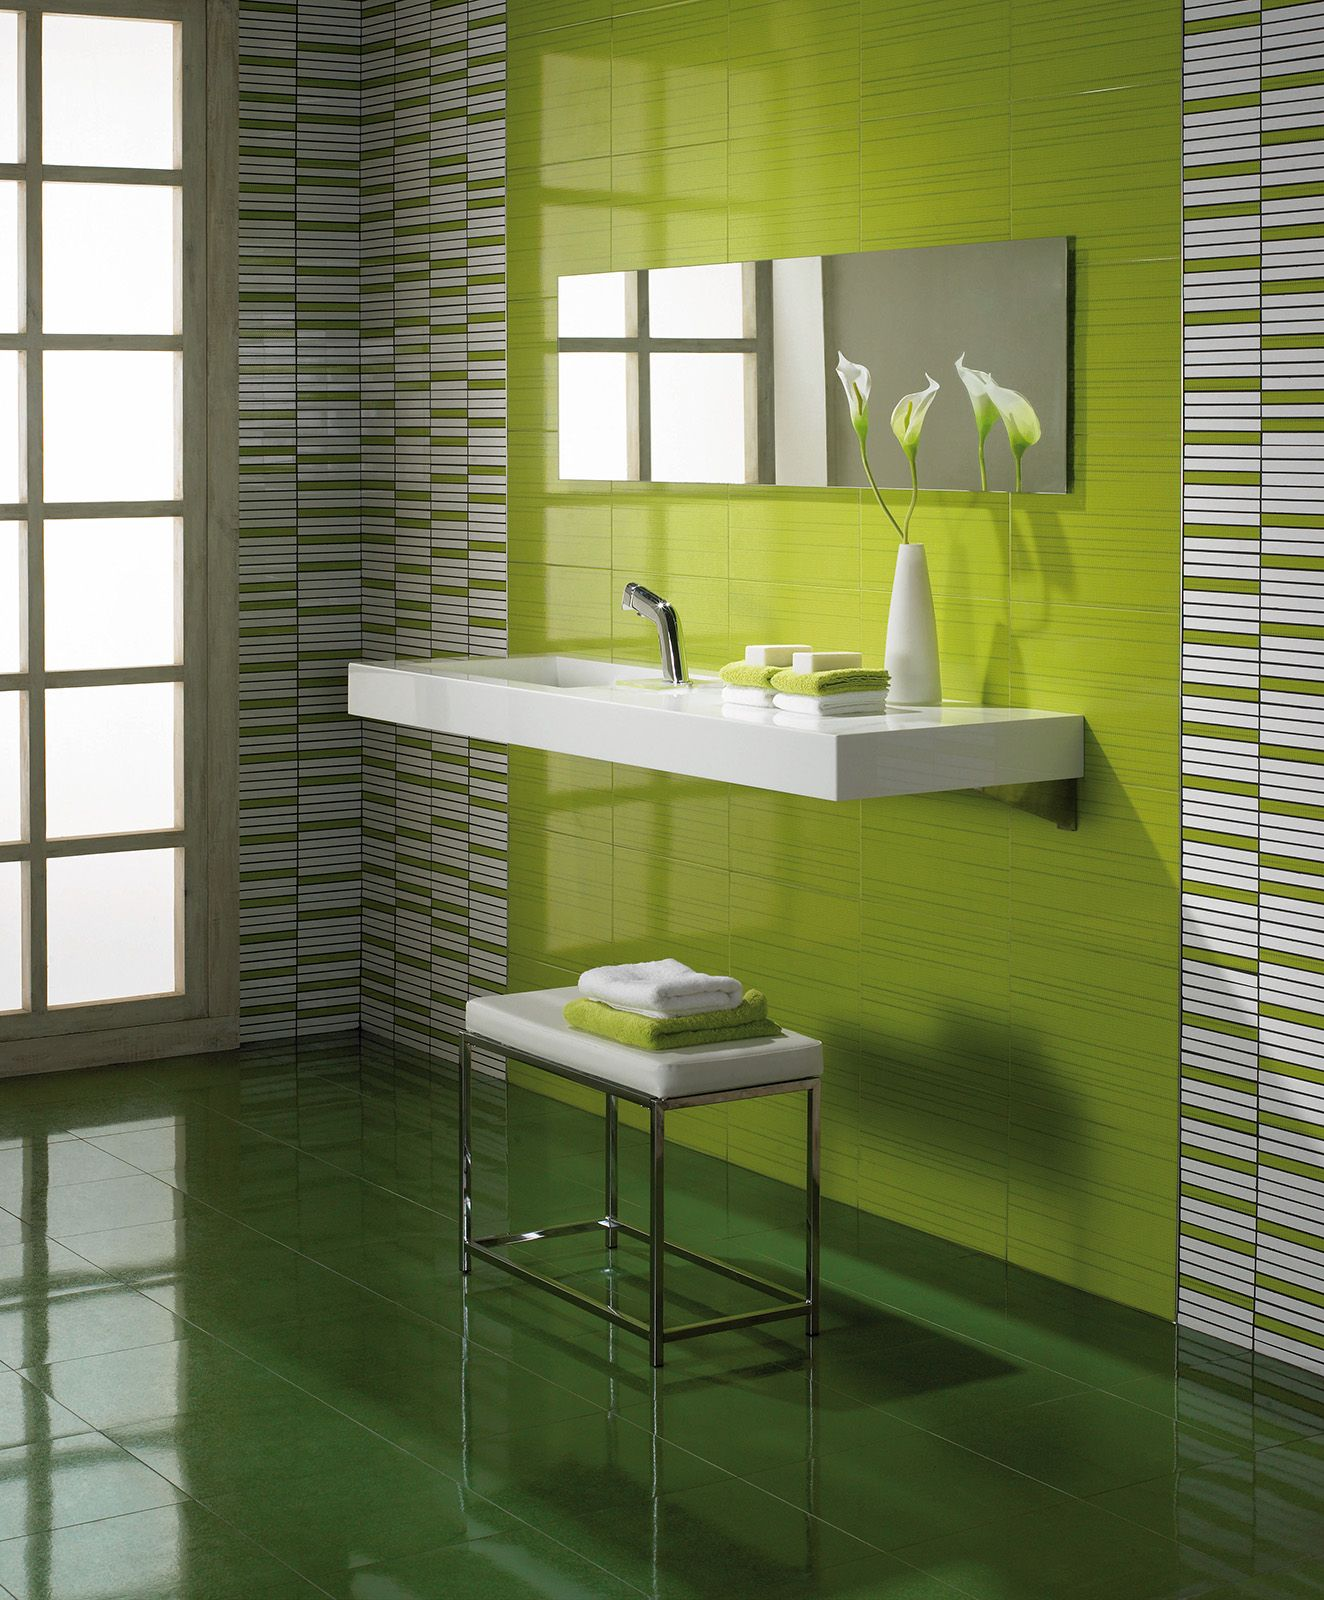 Light green bathroom tiles - Bright And Light Lime Green Wall Tiles Perfect For A Bathroom Floating Sink Stainless